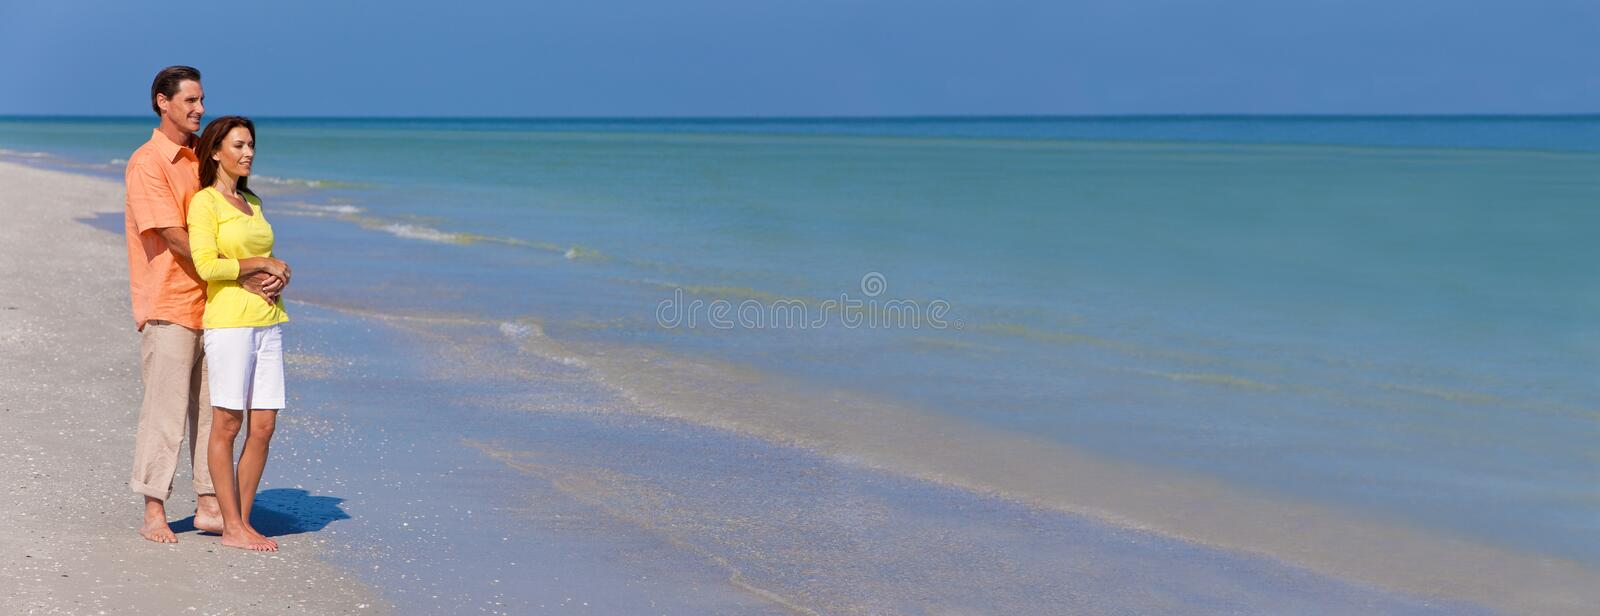 Happy, Man and Woman Couple on An Empty Beach Panorama royalty free stock photography